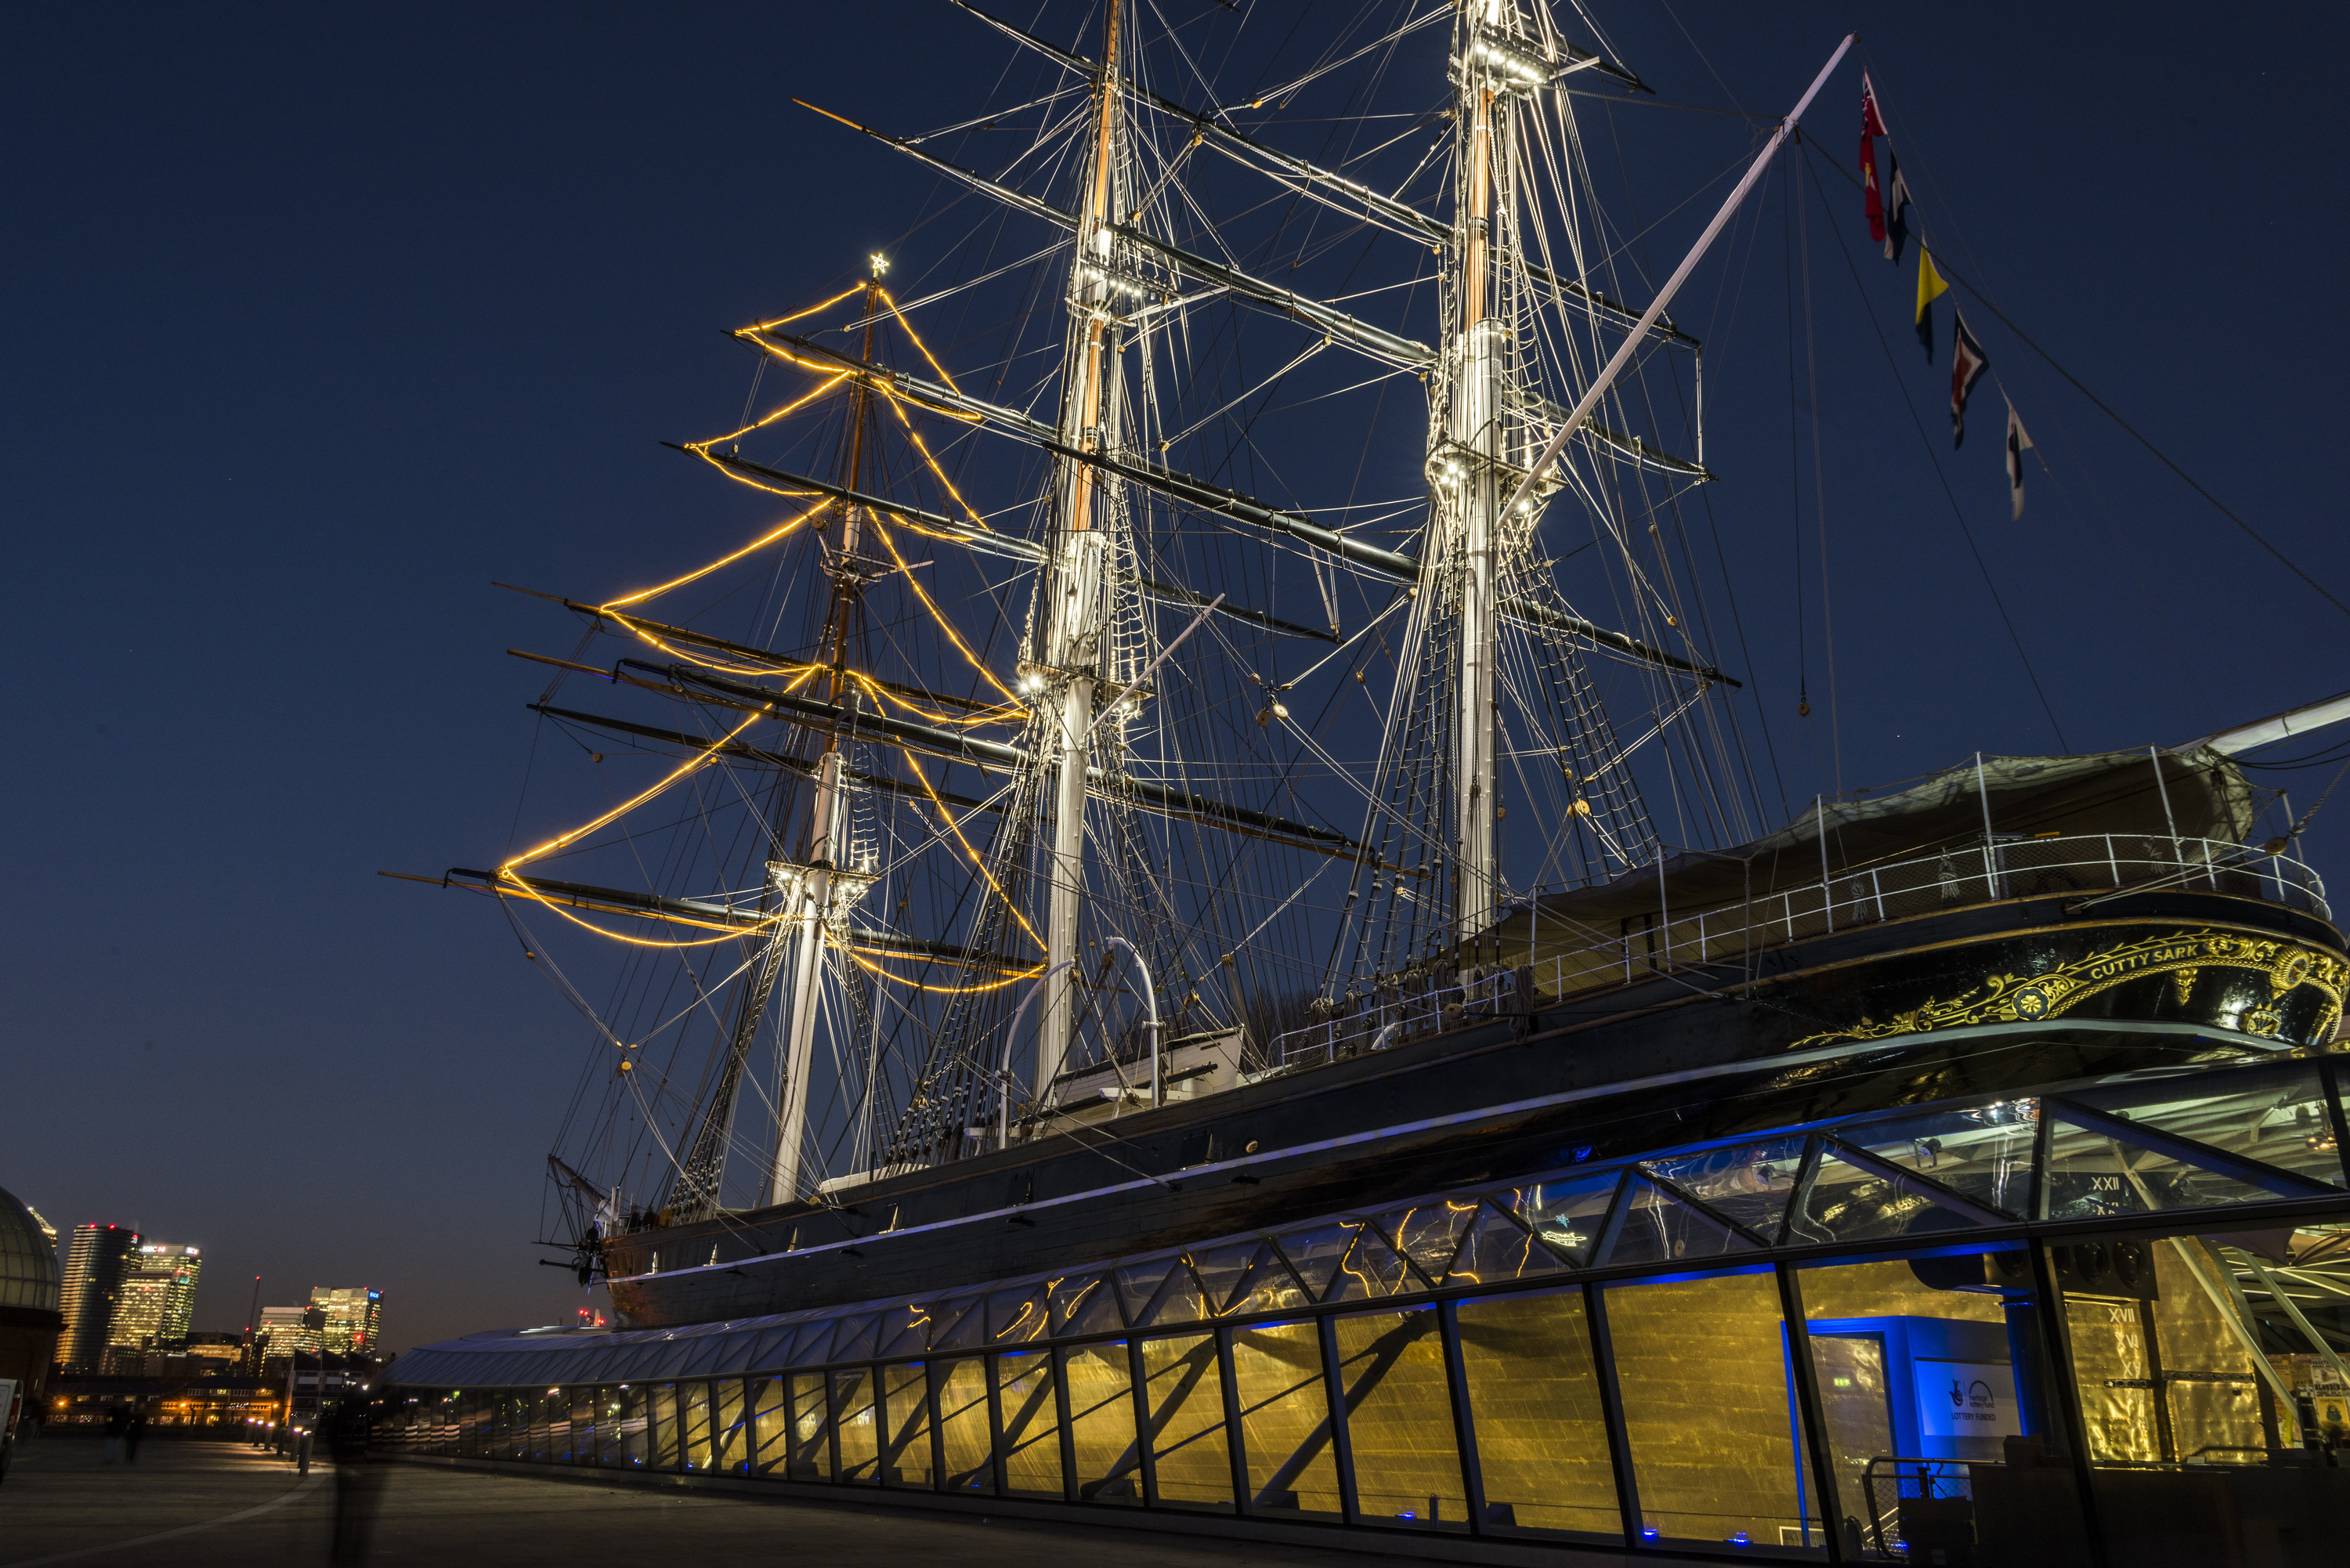 Cutty Sark christmas tree decorations with star on top at sunset.